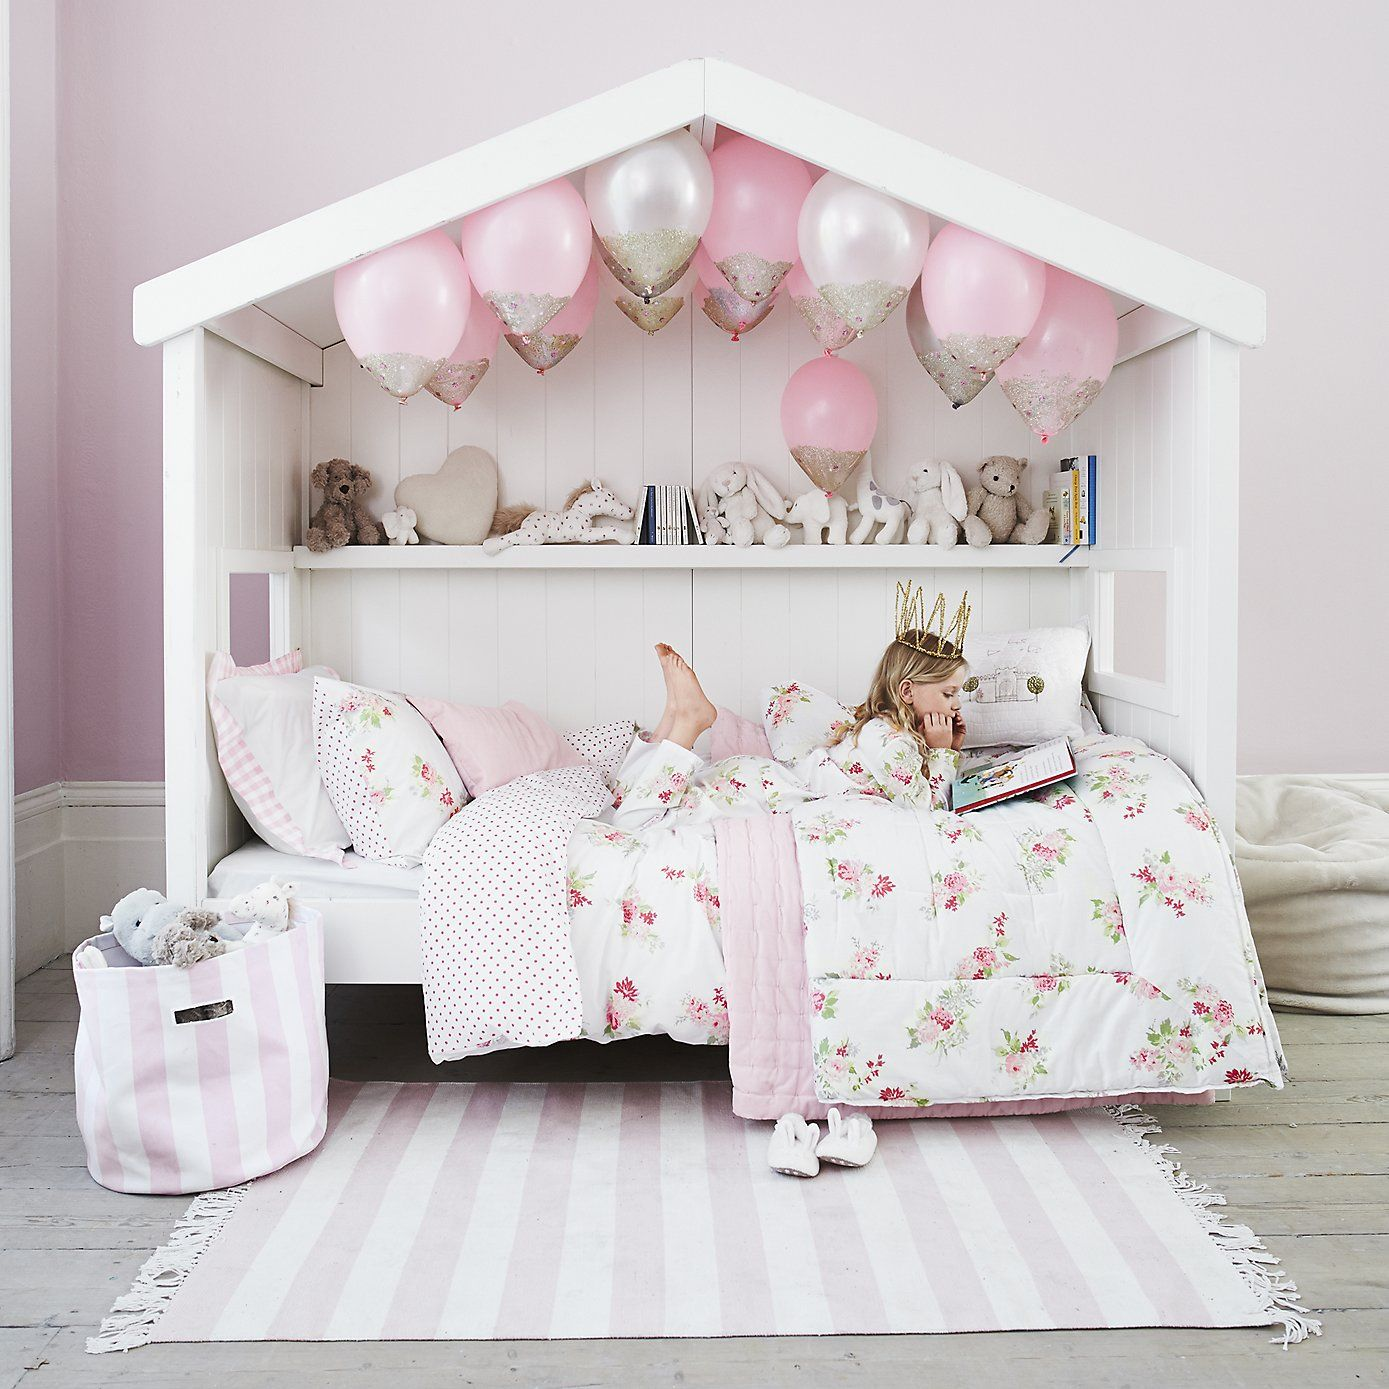 Classic house day bed home dec pinterest for Inneneinrichtung kinderzimmer